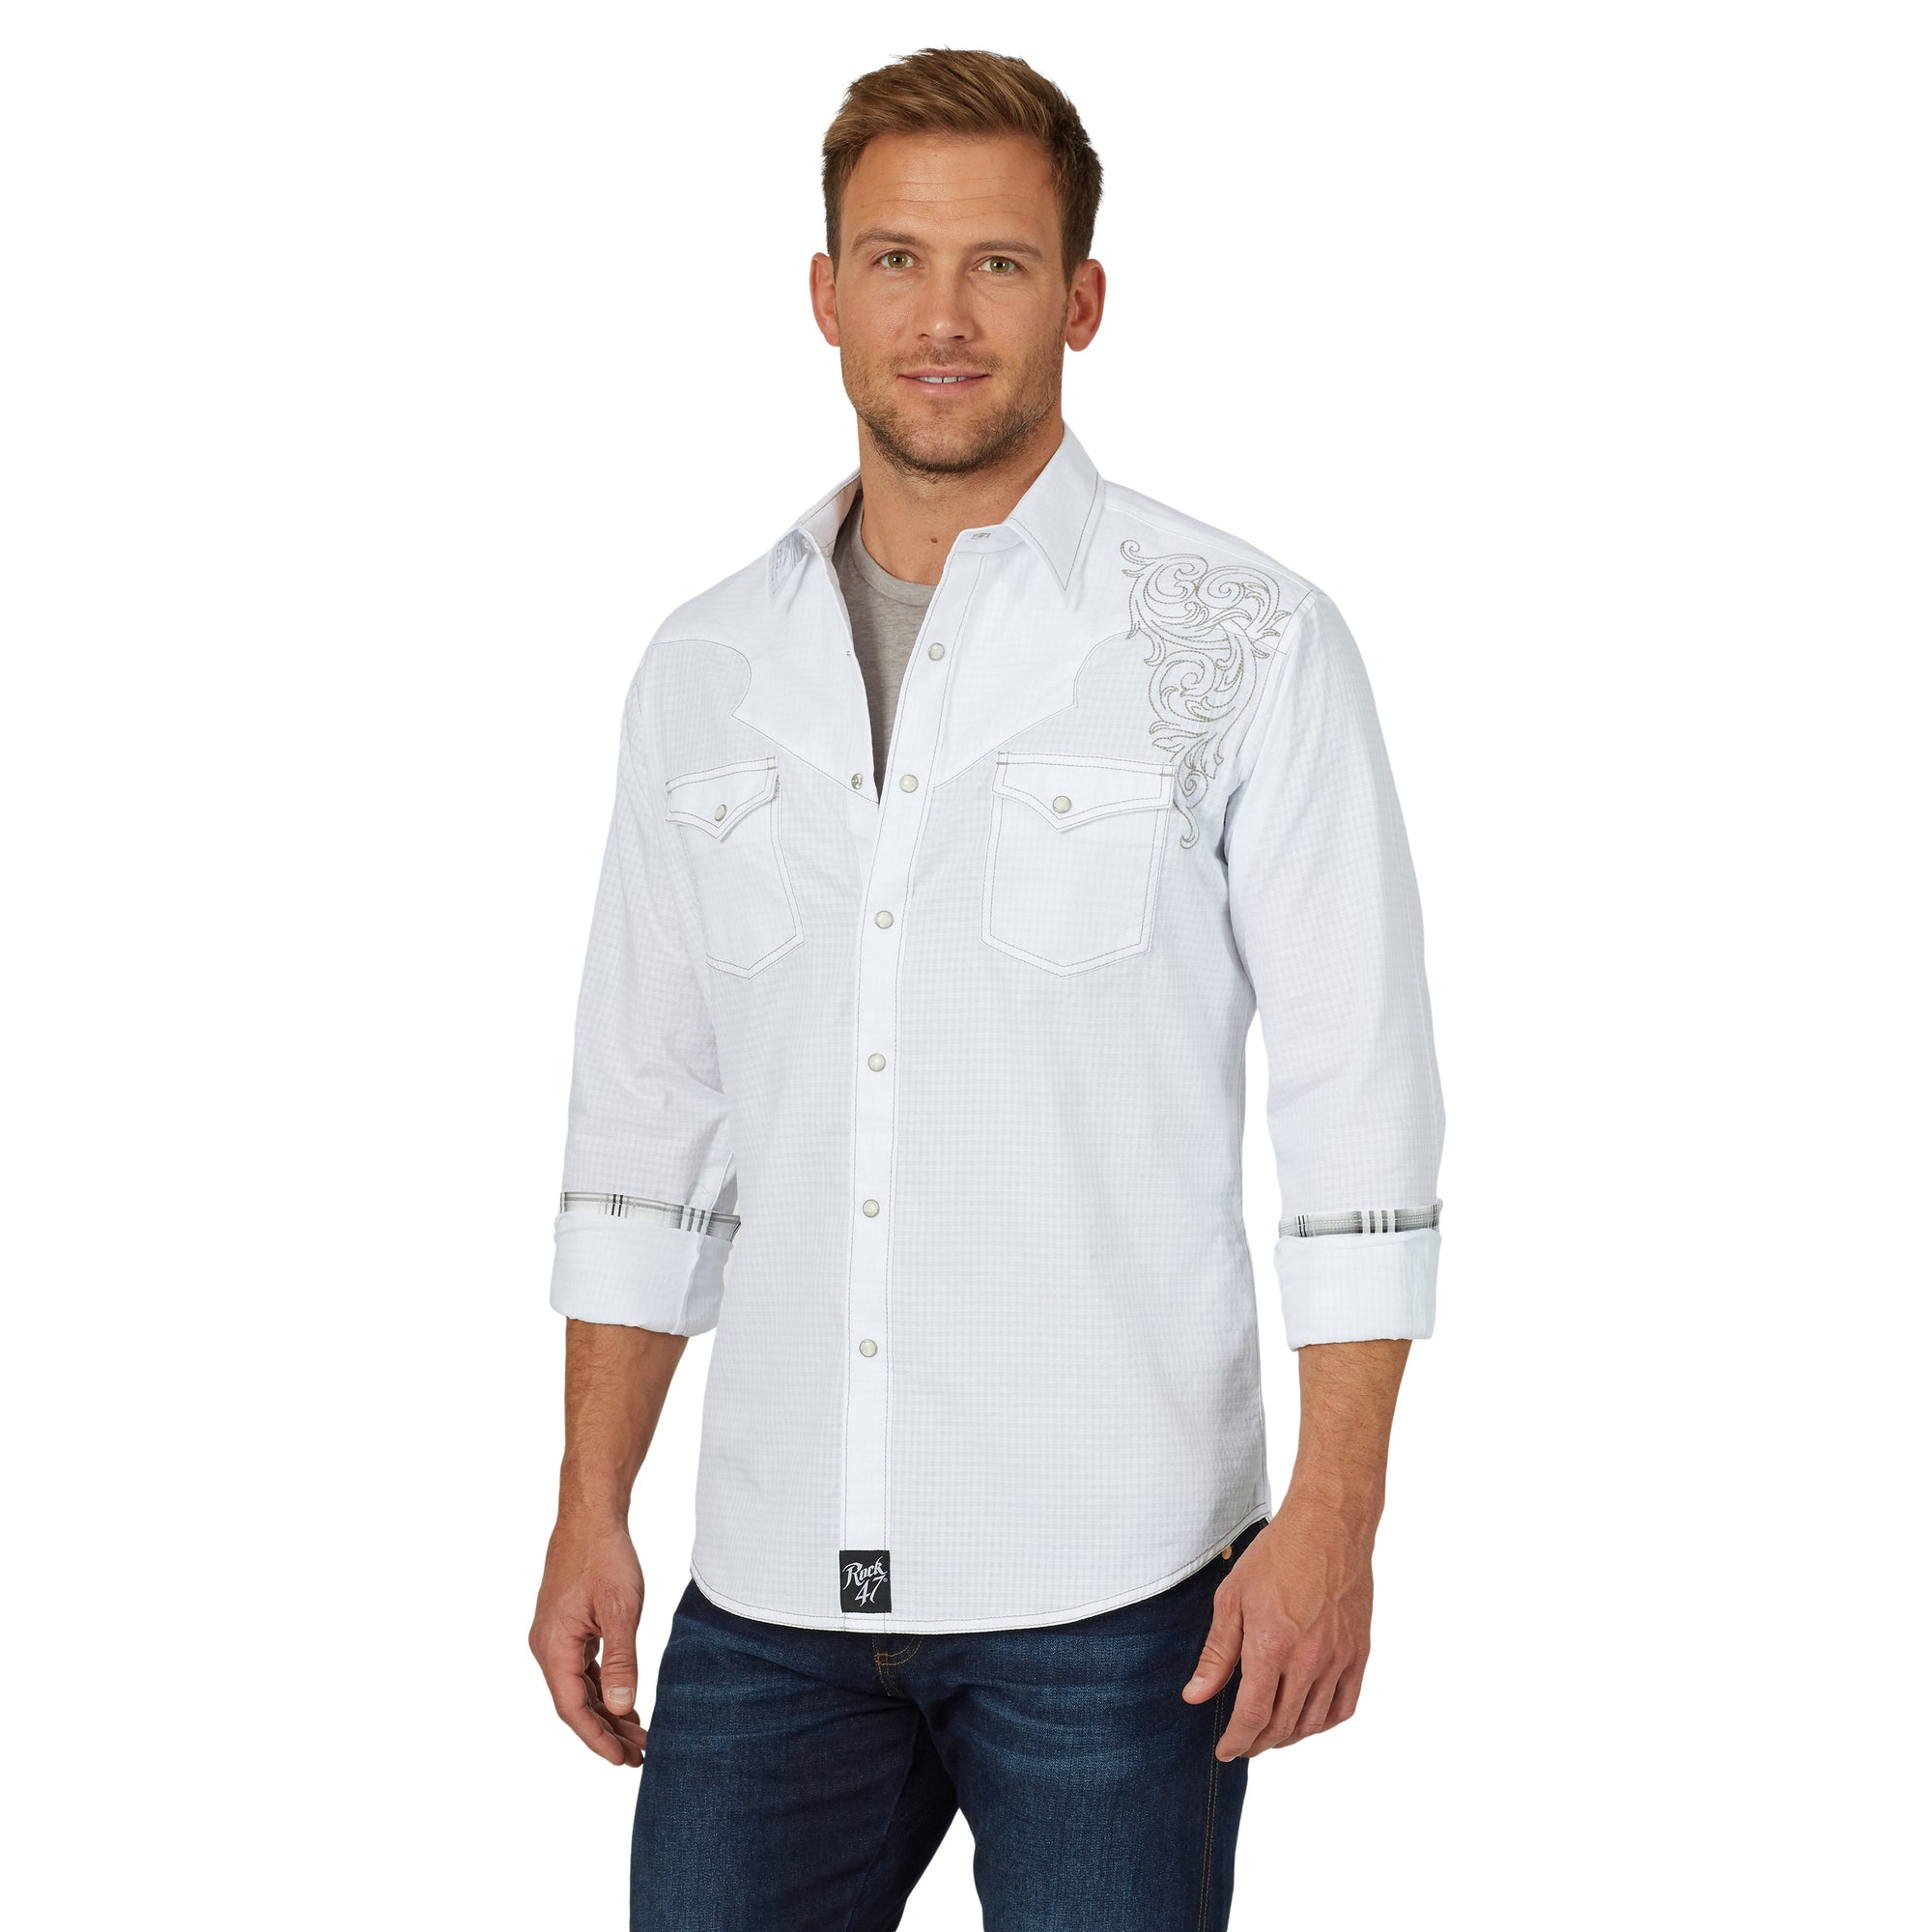 ROCK 47 by Wrangler Men's Snap White Shirt